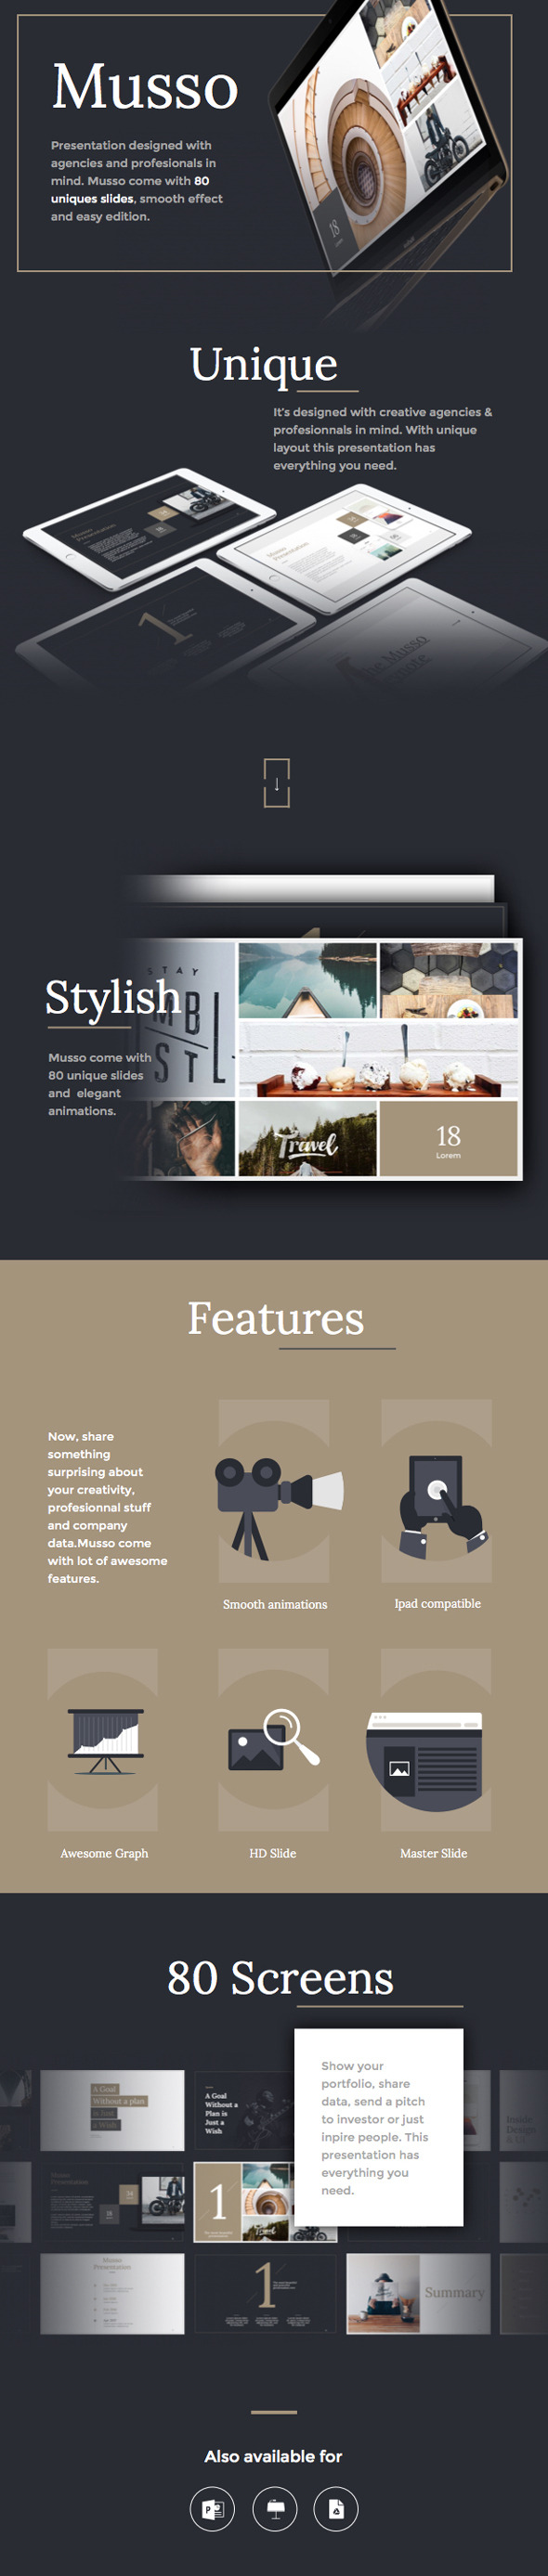 musso powerpoint presentation template #design #slides download, Presentation templates